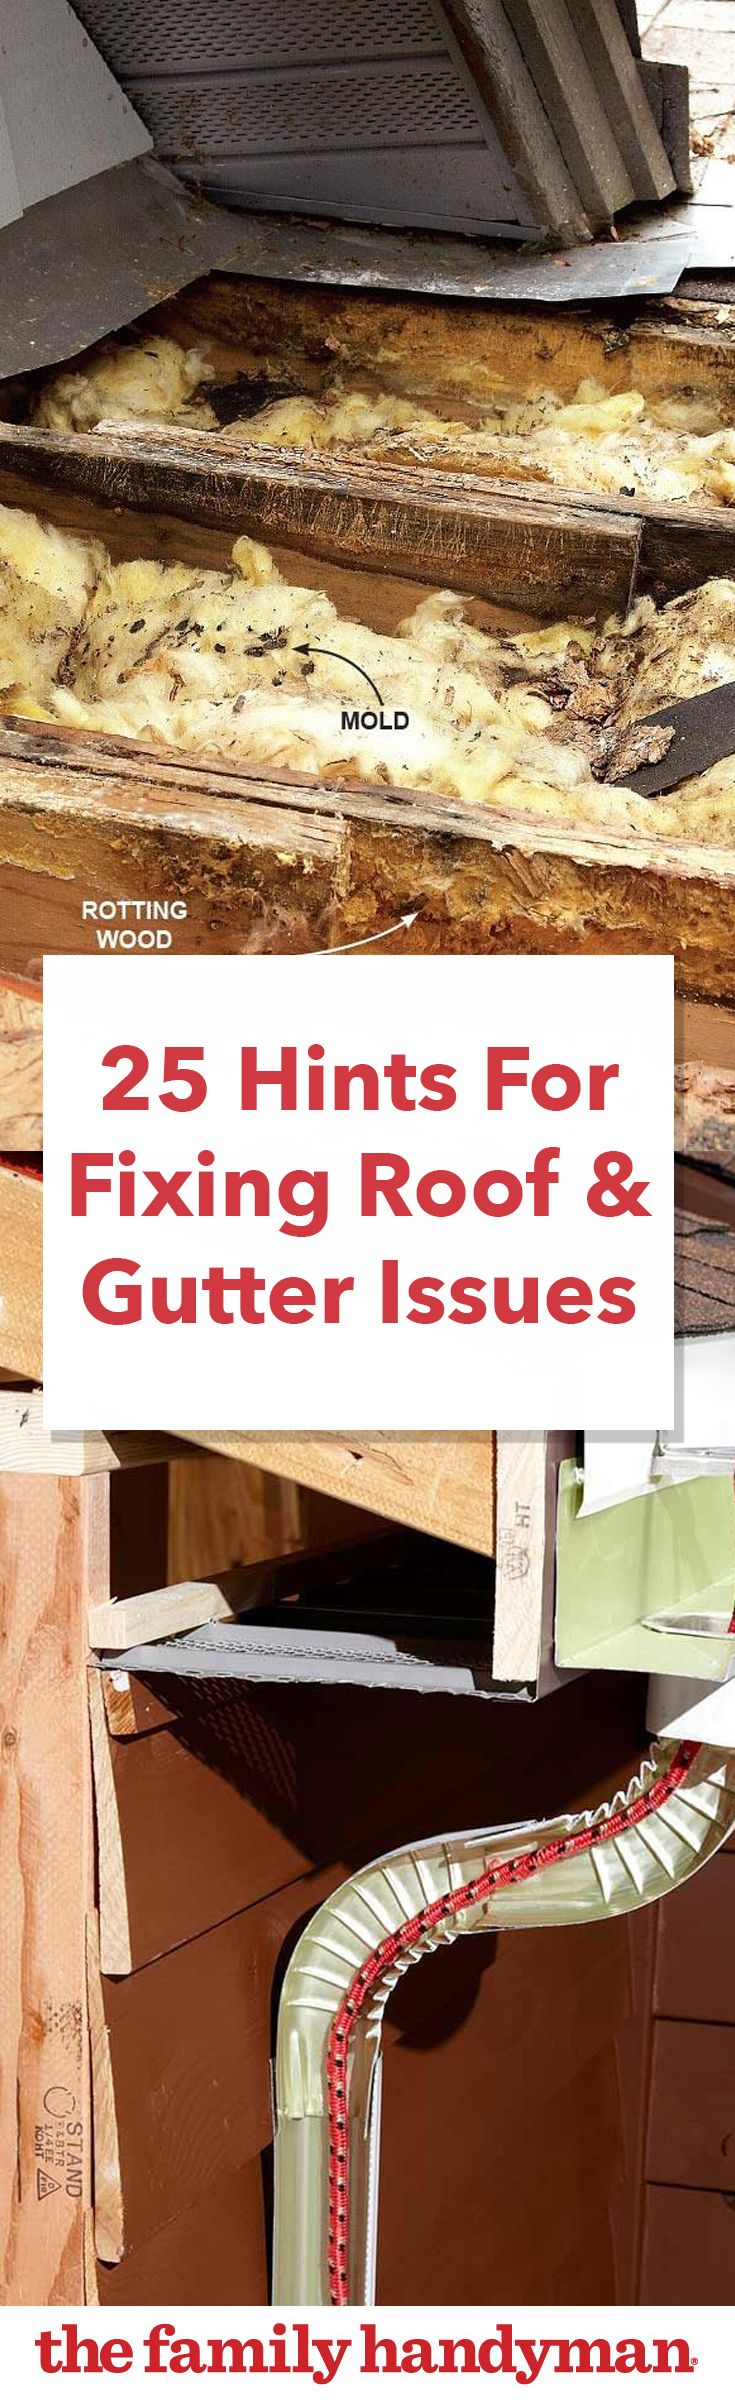 Best 25 Hints For Fixing Roof And Gutter Issues Diy Home 400 x 300